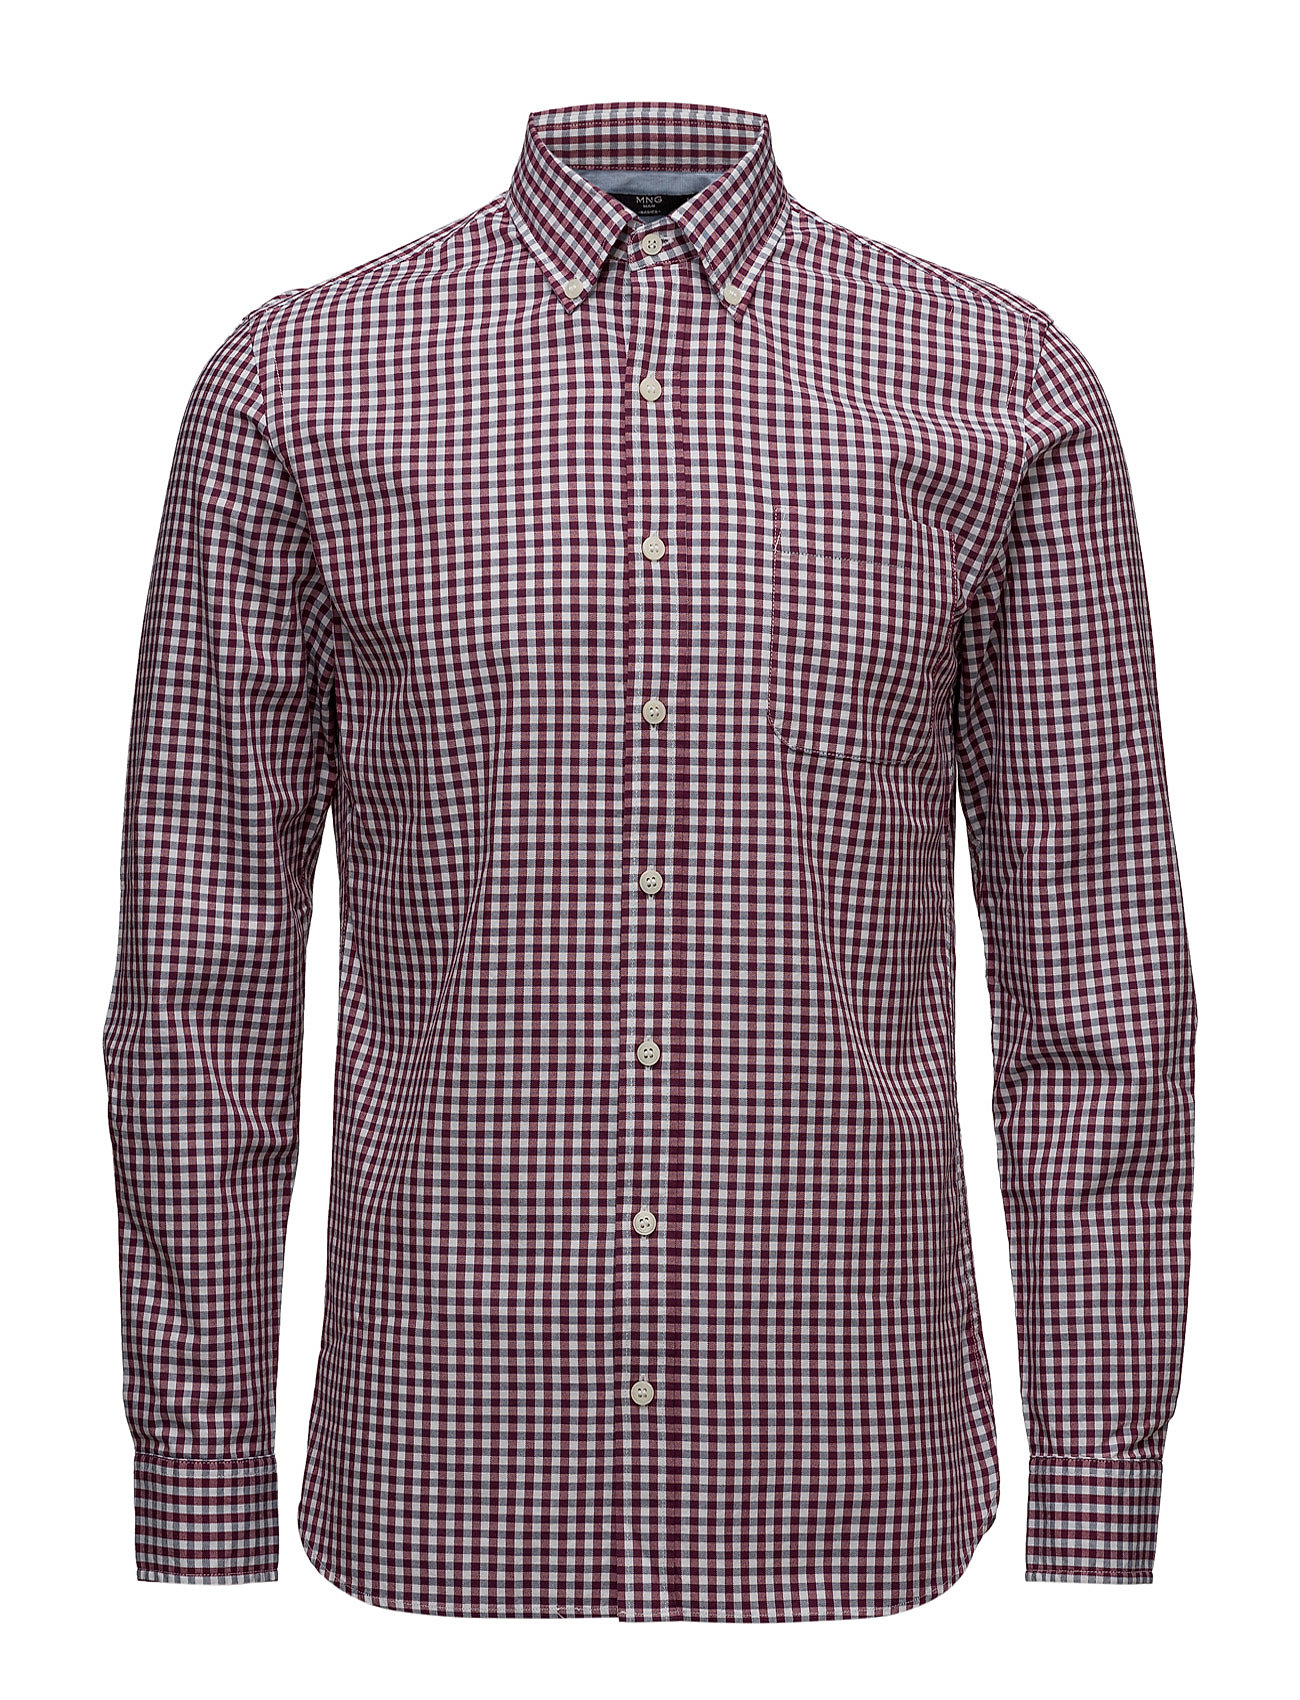 Slim-Fit Gingham Check Shirt Mango Man Casual sko til Herrer i Medium Pink